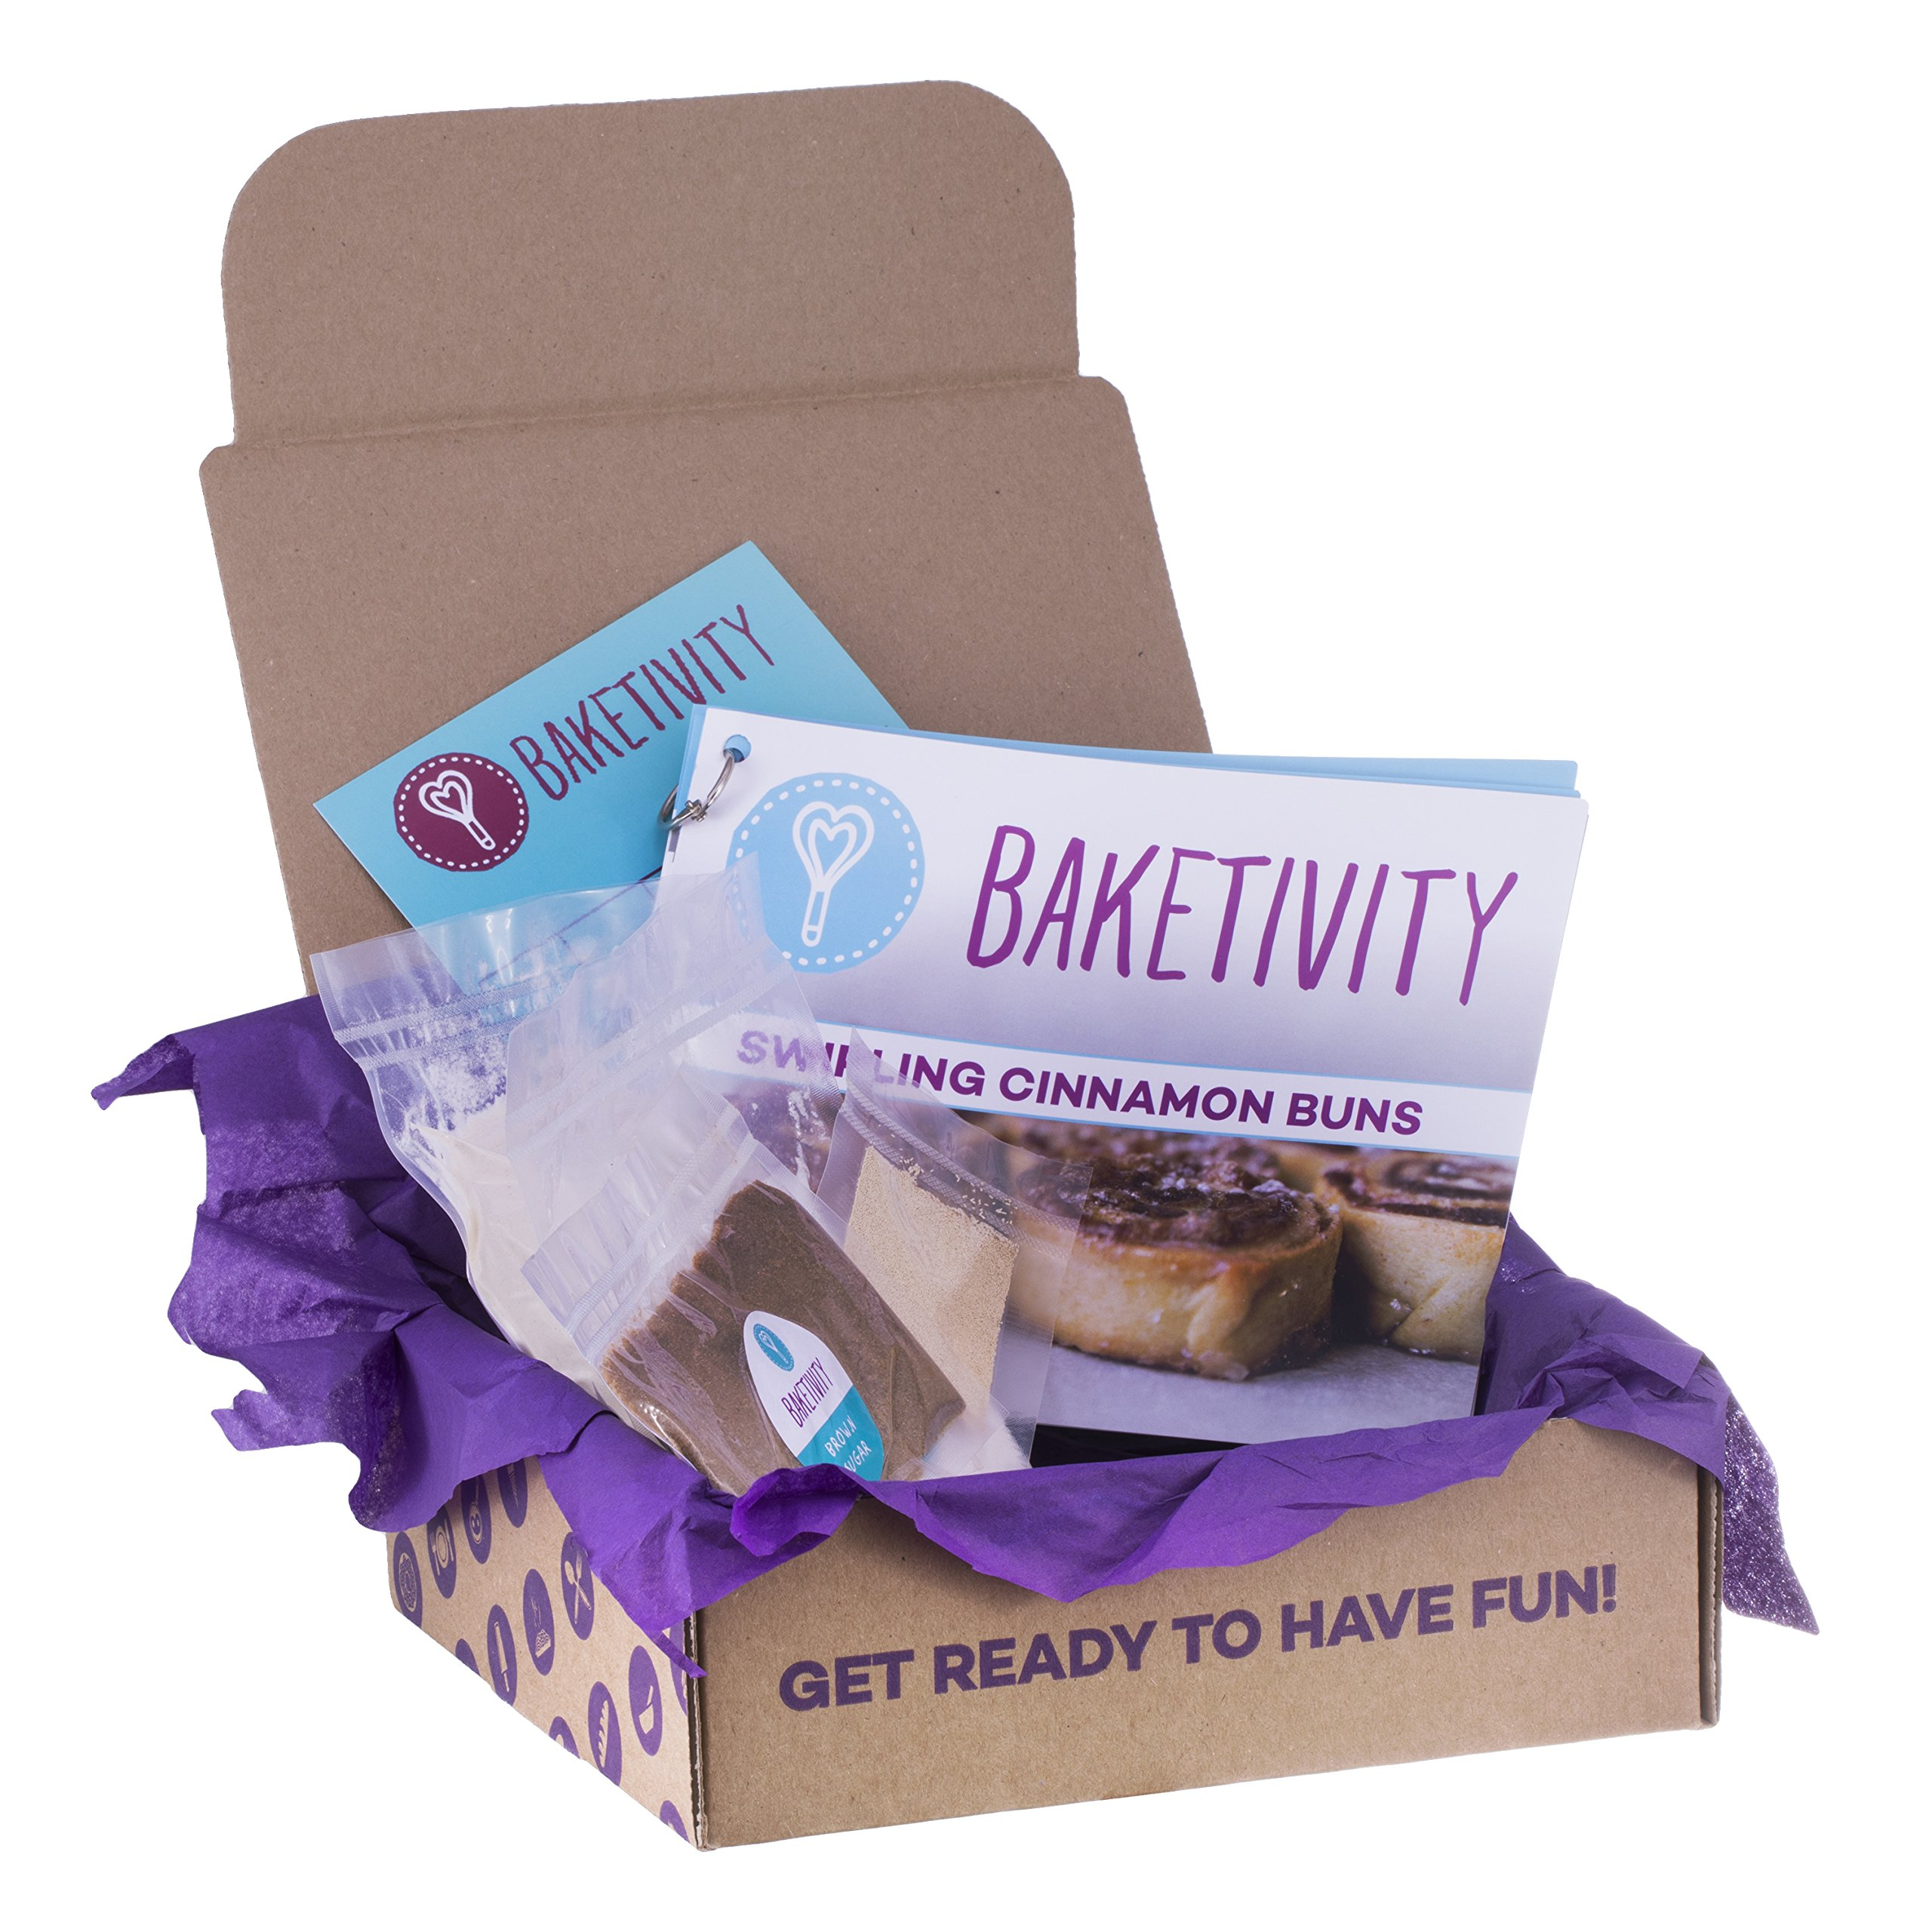 Baketivity Kids Baking Set, Meal Cooking Party Supply Kit for Teens, Real Fun Little Junior Chef Essential Kitchen Lessons, Includes Pre-Measured Ingredients, Cinnamon Buns by Baketivity (Image #9)